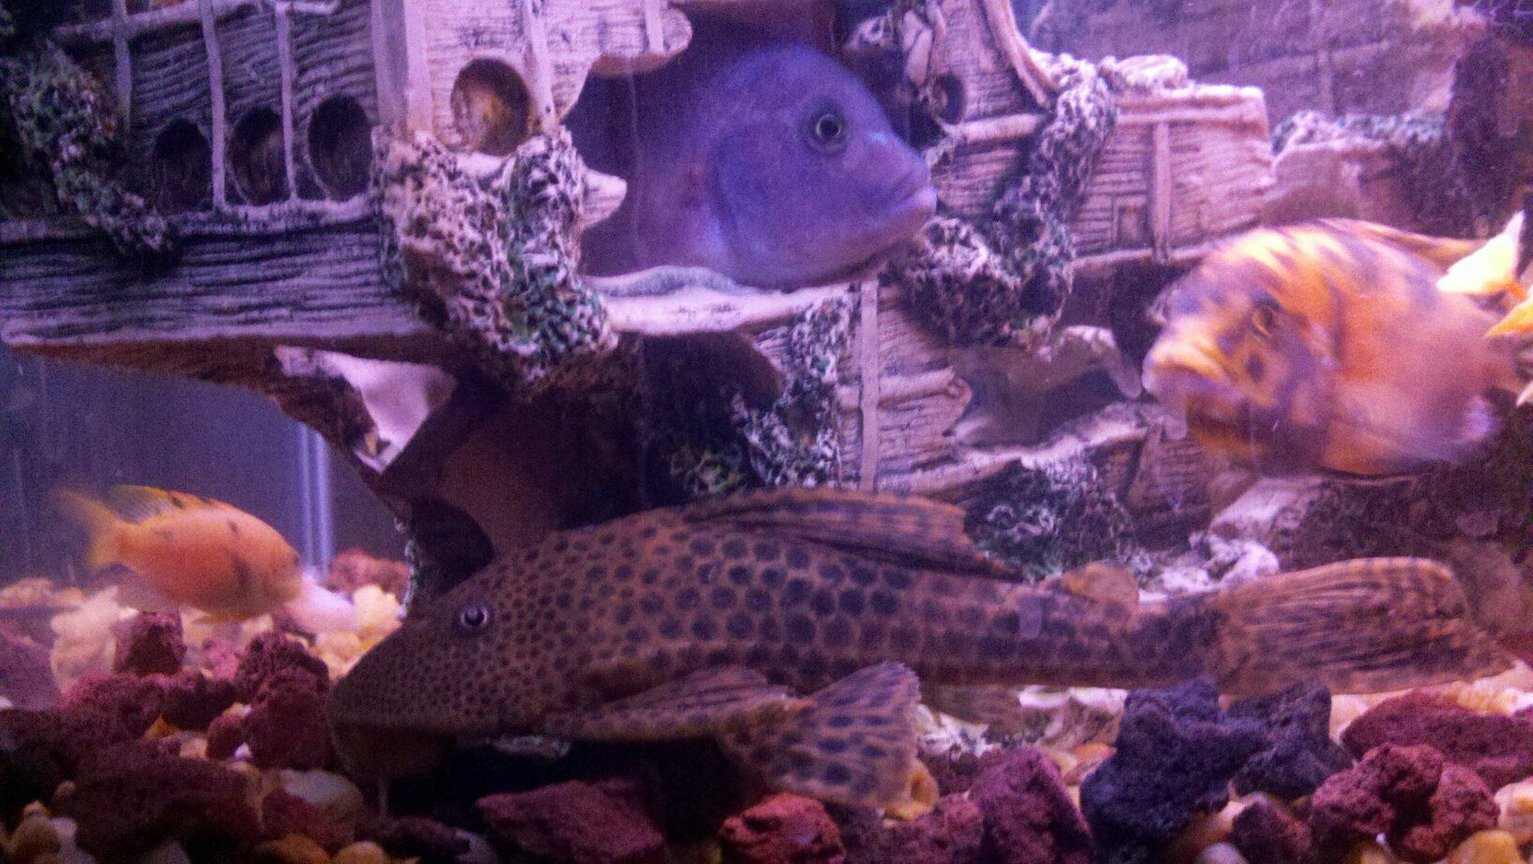 freshwater fish - glyptoperichthys gibbiceps - sailfin pleco (l-83) stocking in 100 gallons tank